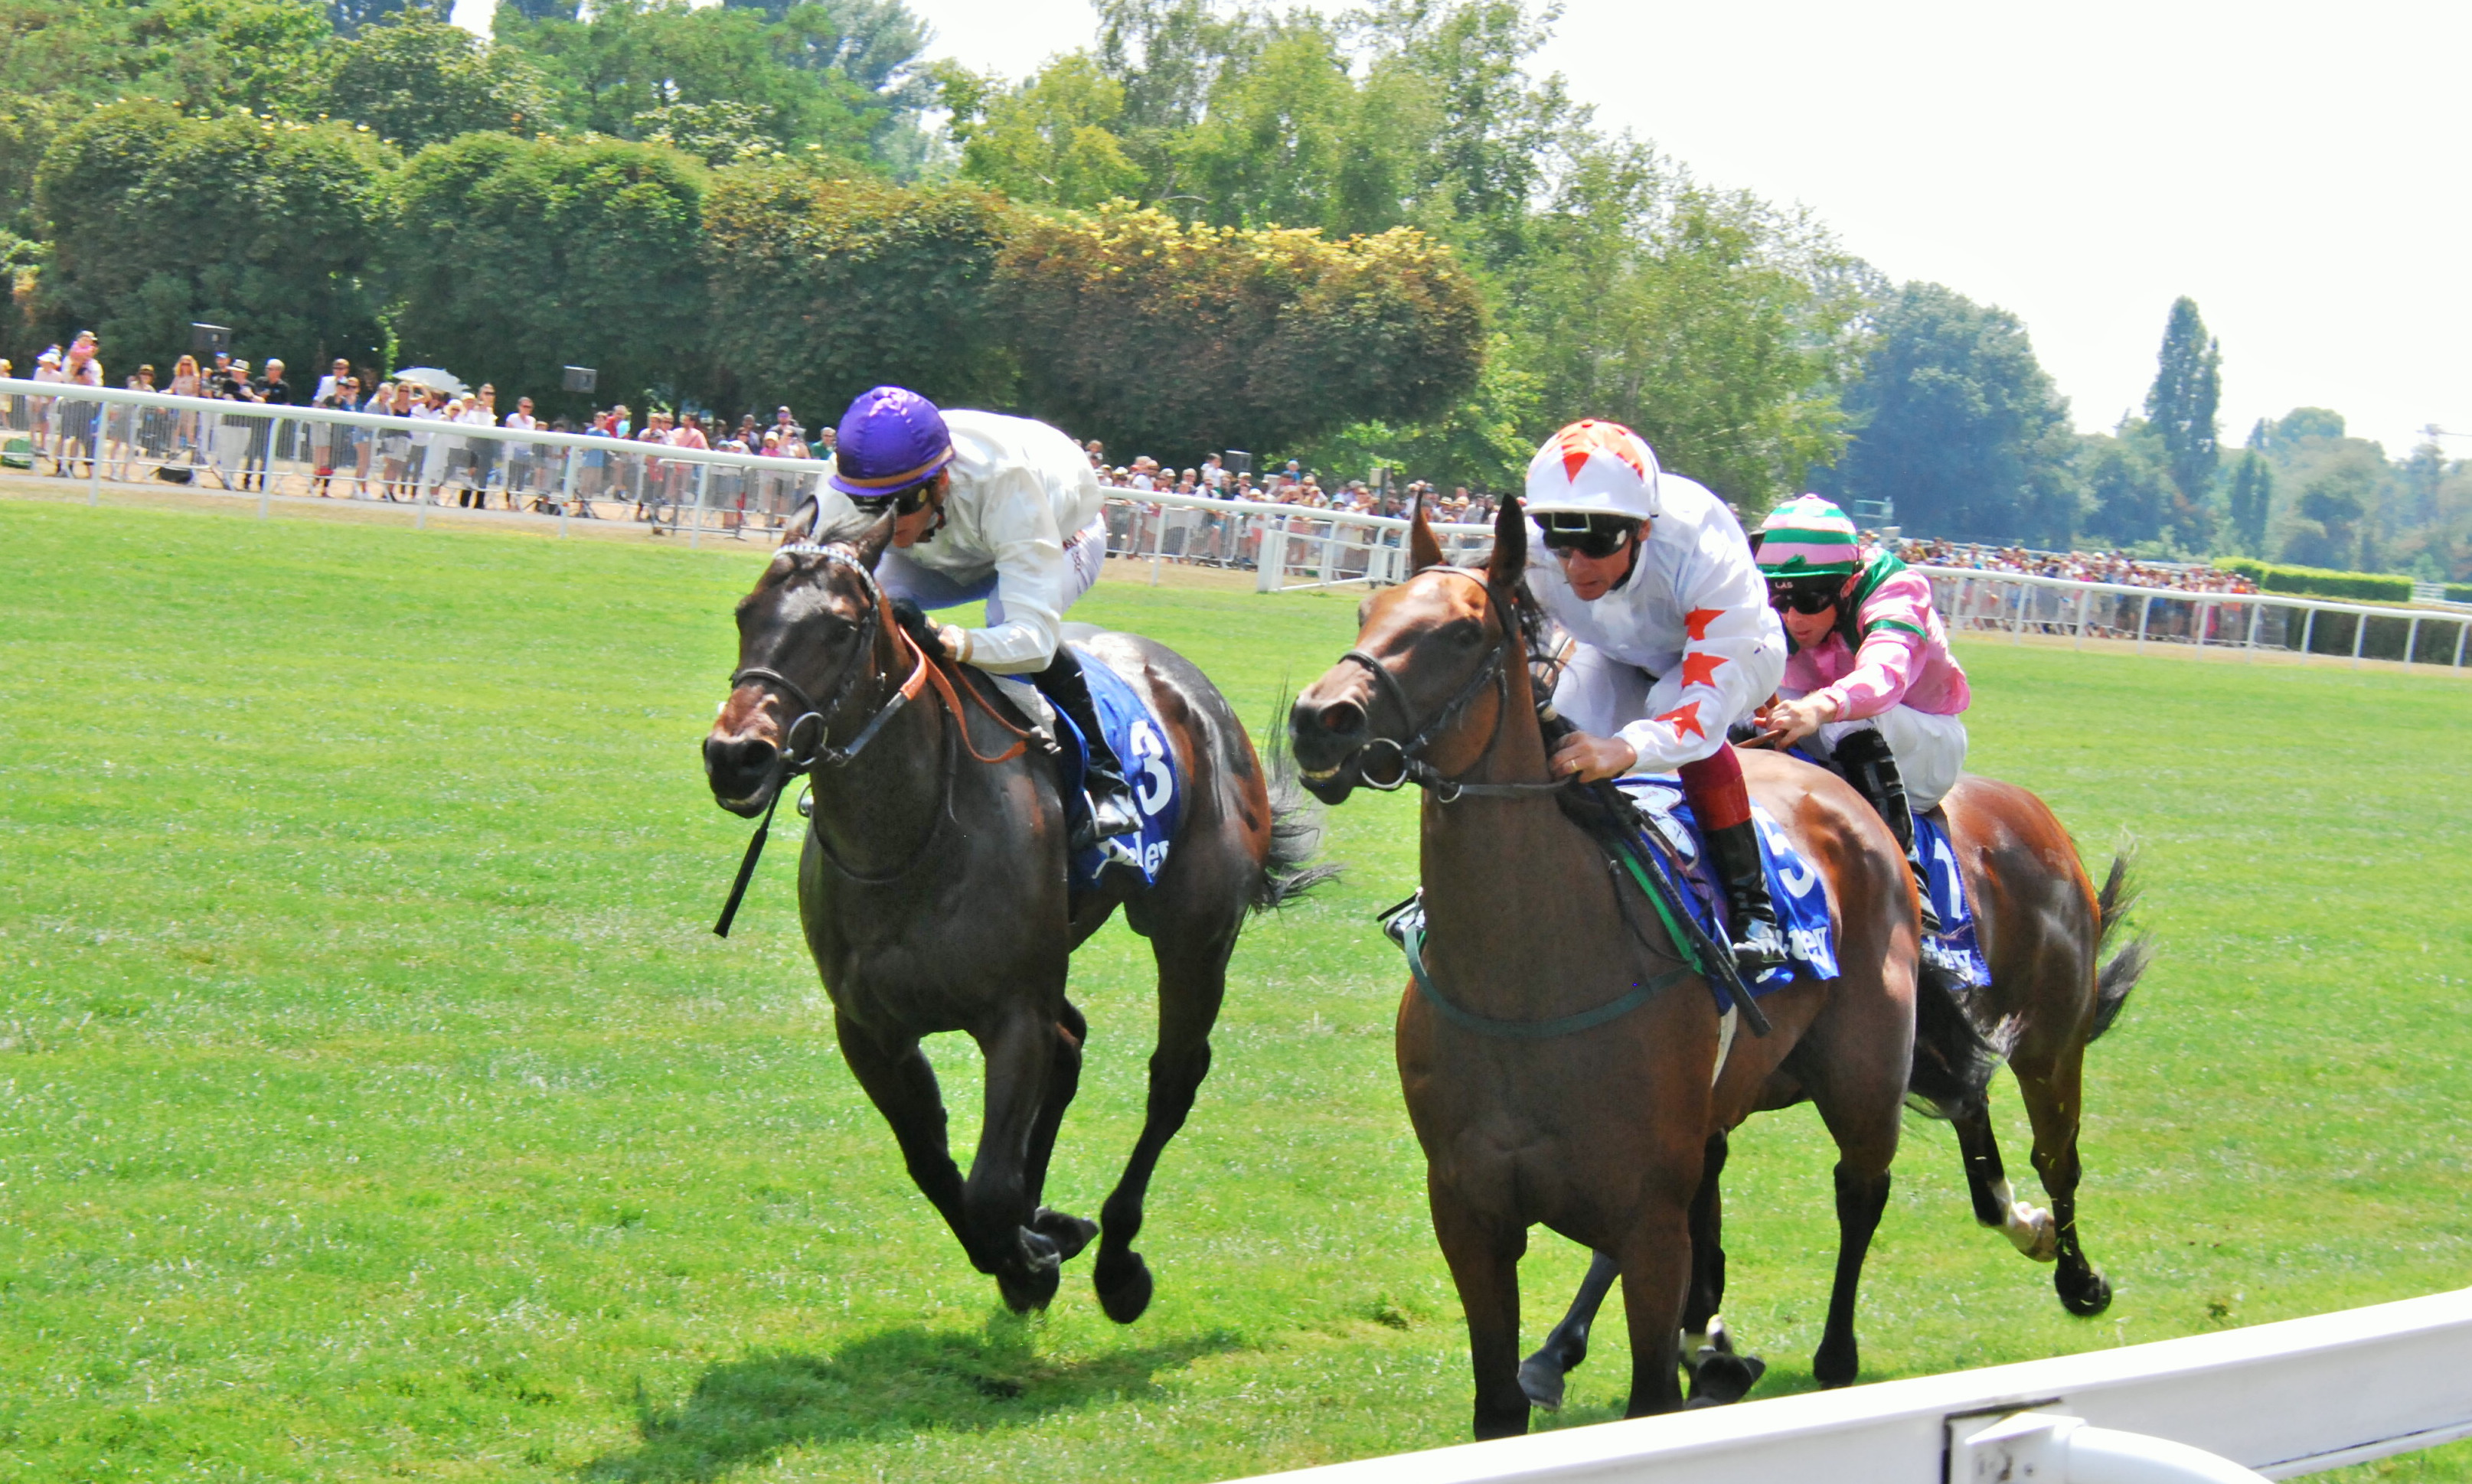 Signoro Cabello (Frankie Dettori) winning one of Maisons-Laffitte's most famous races, the G2 Prix Robert Papin, last July. Under the plans to close the track, the race would be moved elsewhere. Photo: John Gilmore